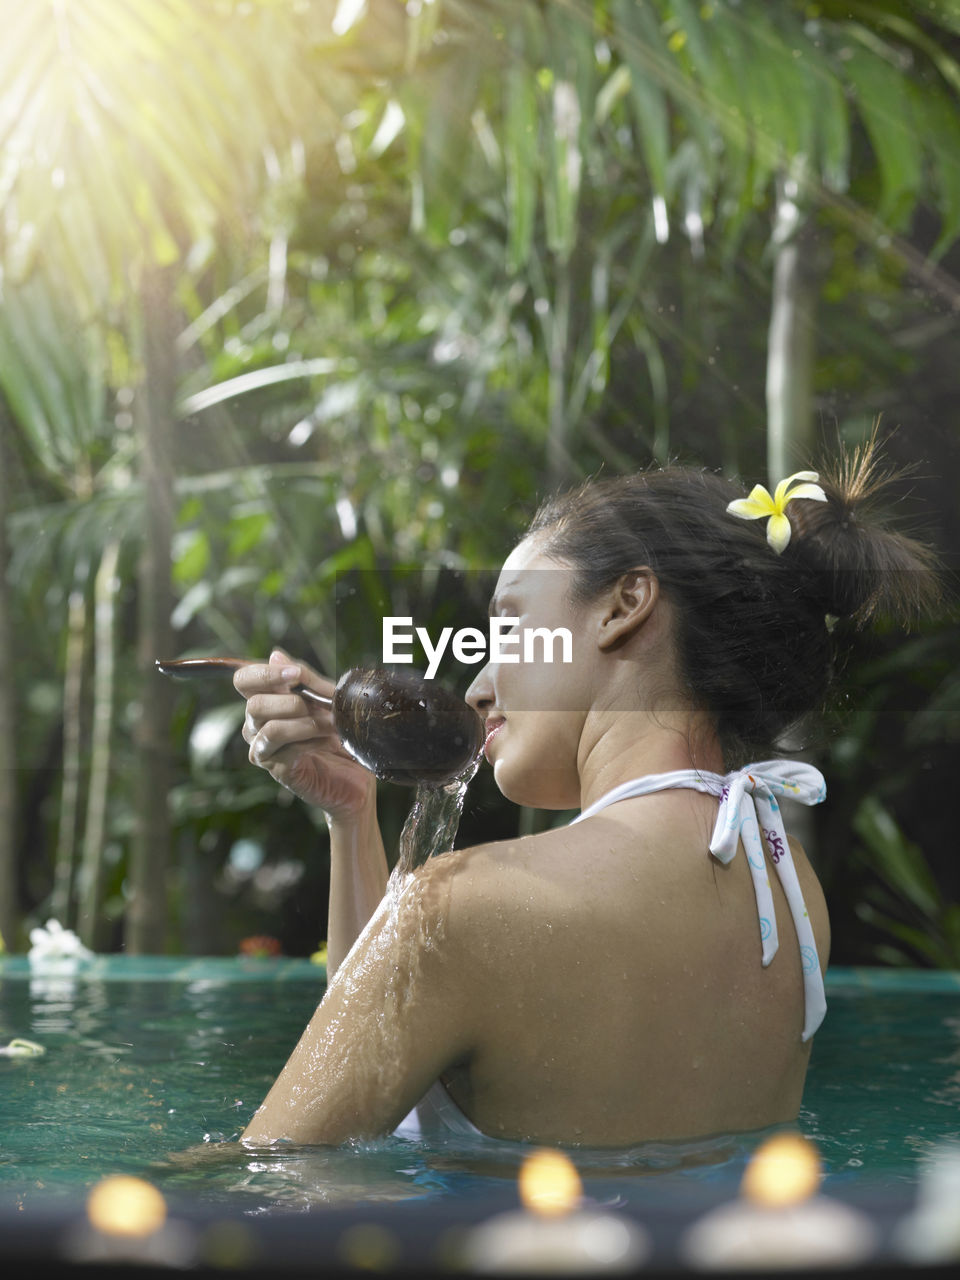 Woman Taking Bath With Ladle In Pool Against Trees